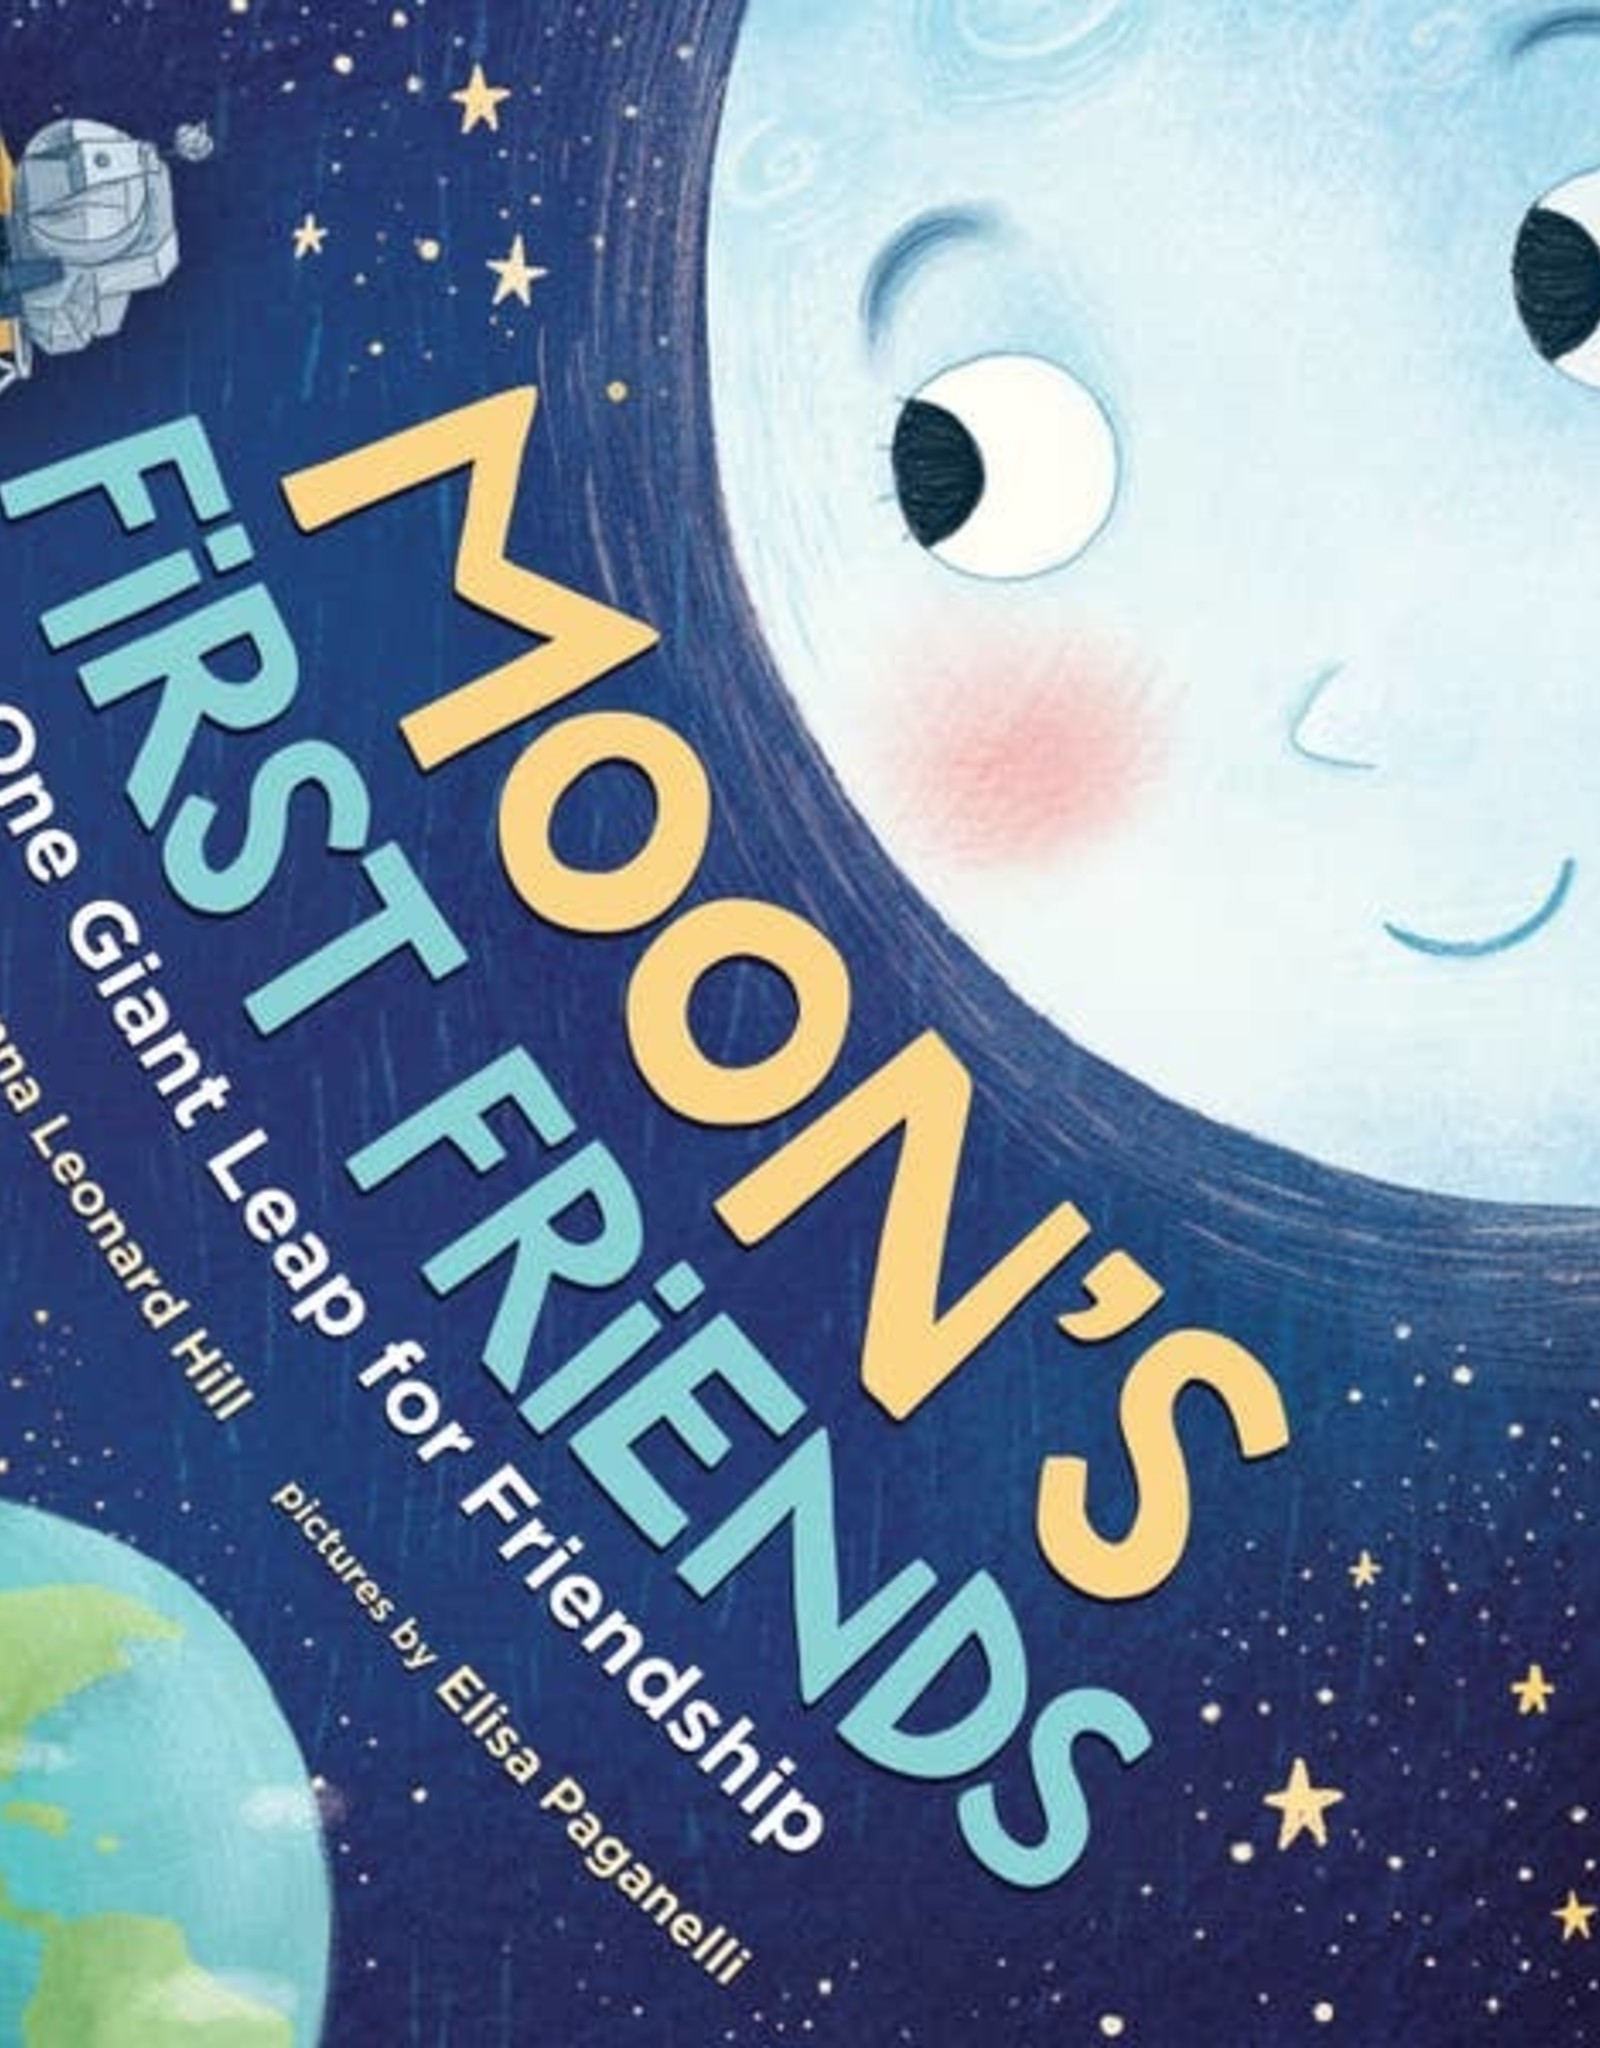 Sourcebooks Moon's First Friends Book